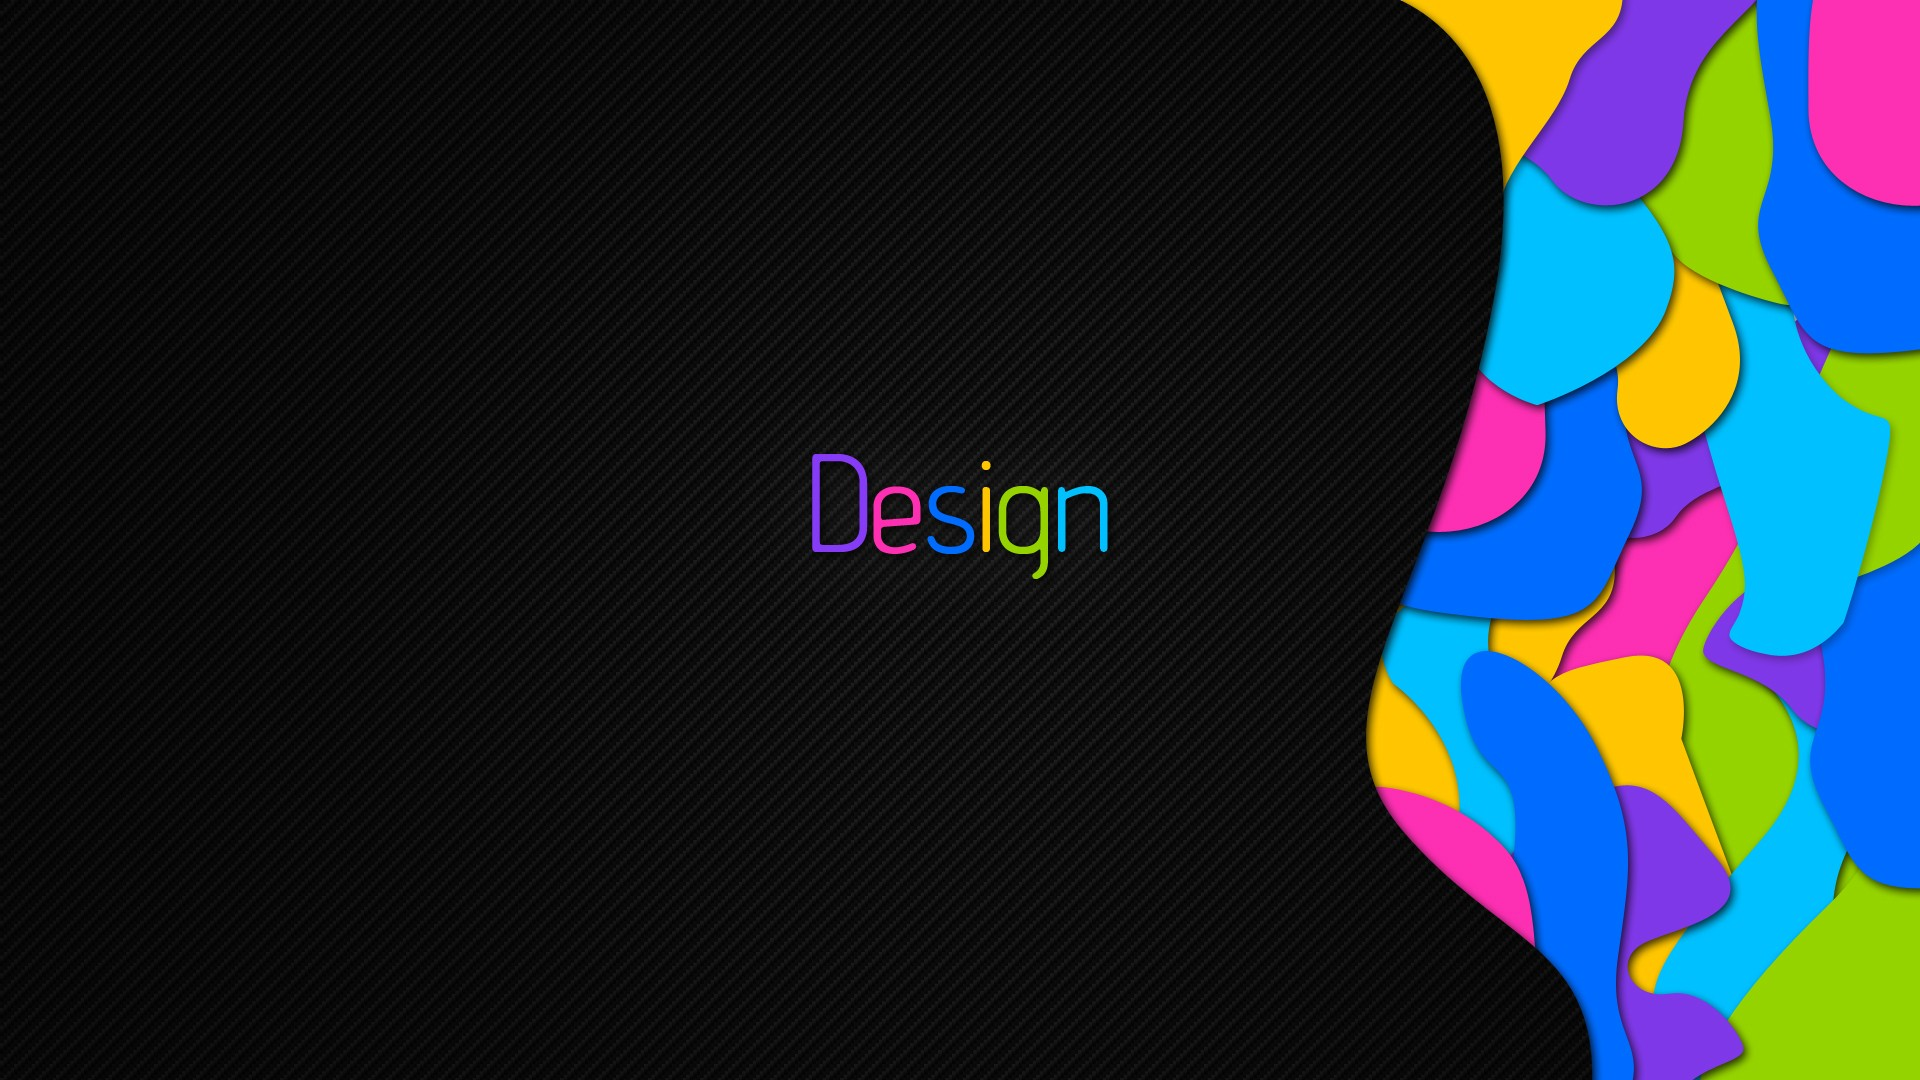 Art Design Background wallpaper   796884 1920x1080